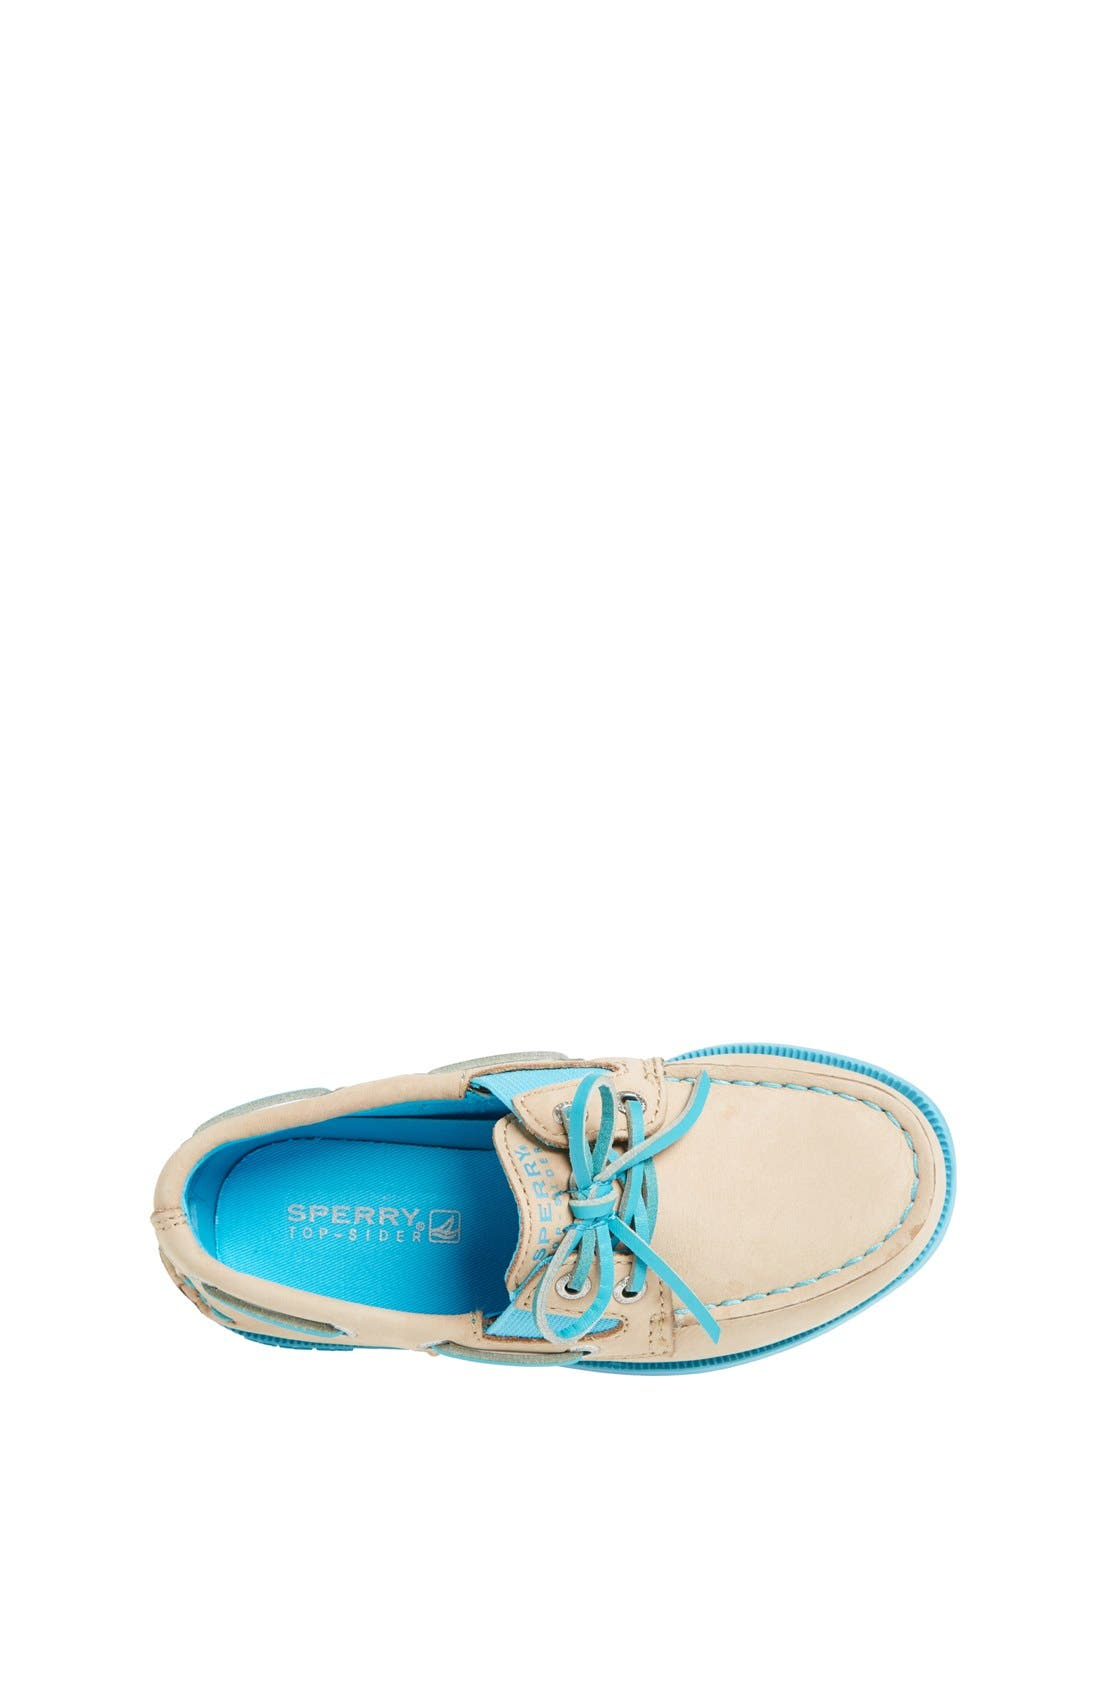 Alternate Image 3  - Sperry Top-Sider® Kids 'Authentic Original' Boat Shoe (Walker, Toddler, Little Kid & Big Kid)